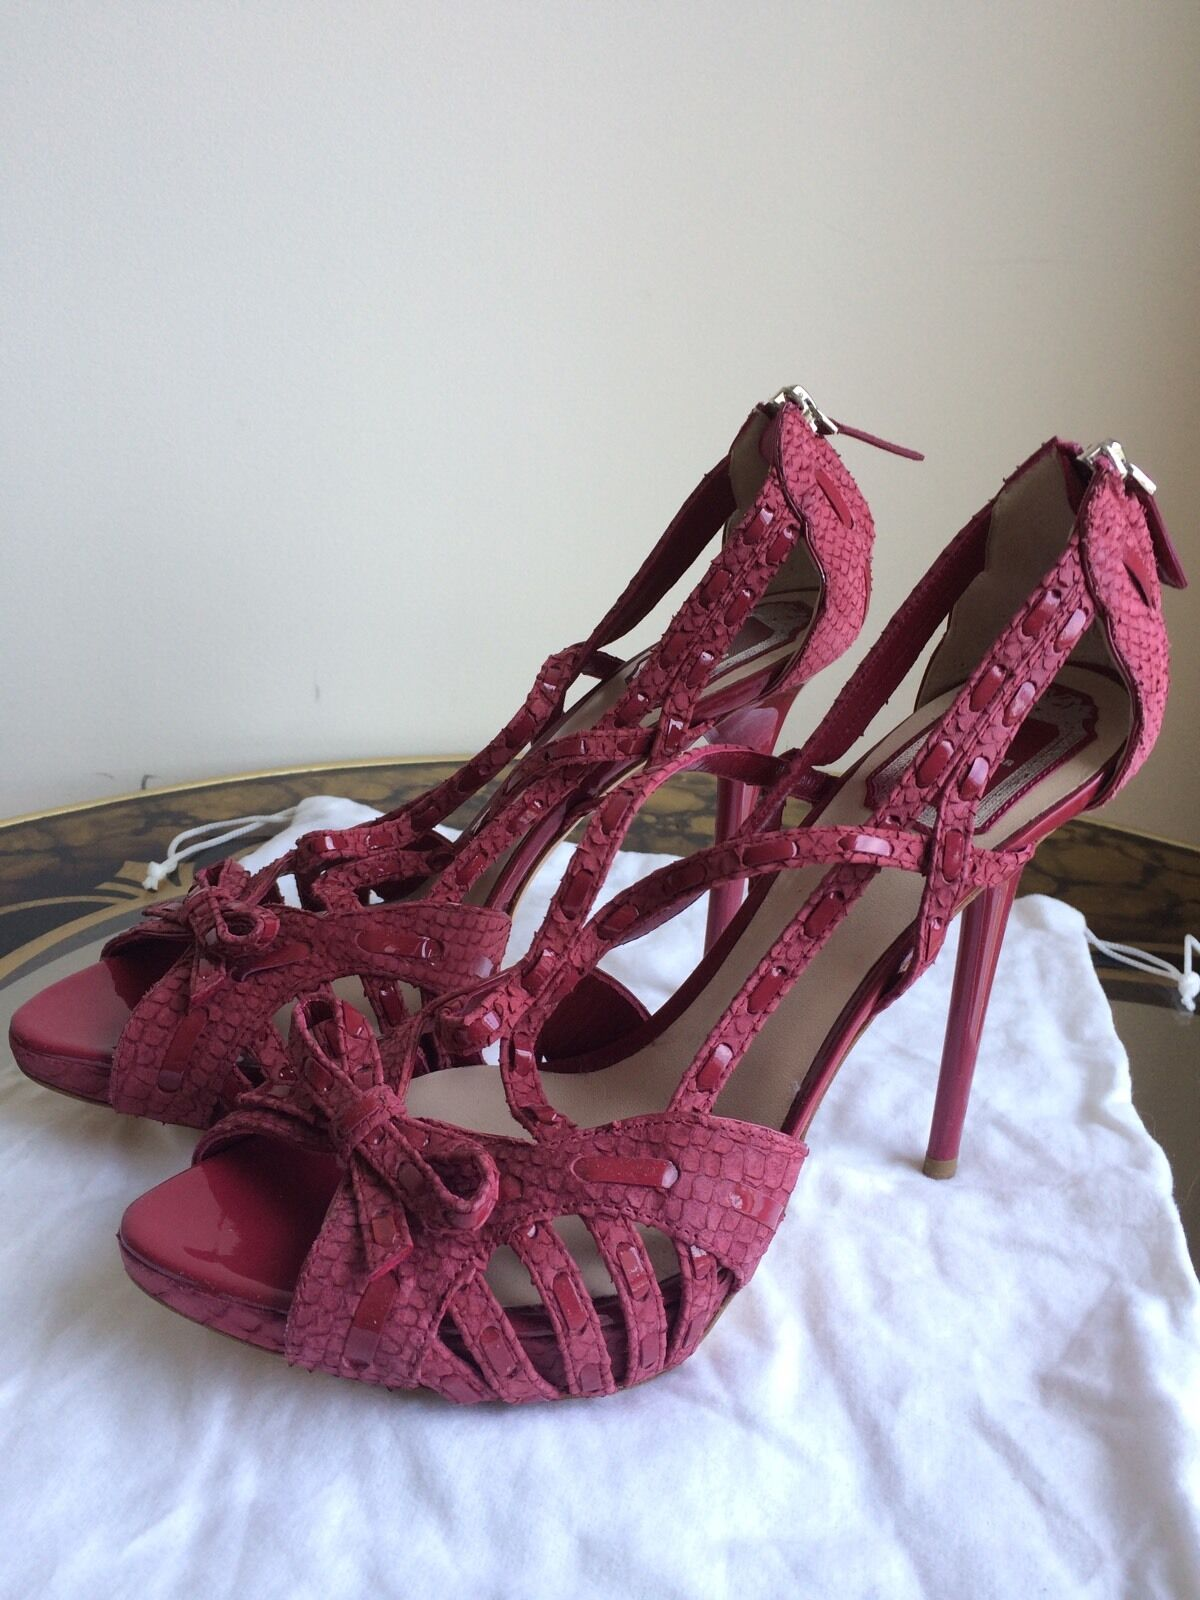 Pink Dior Flower Sandals Heels like Sex and the City Gladiator SZ 39.5 UK 6.5